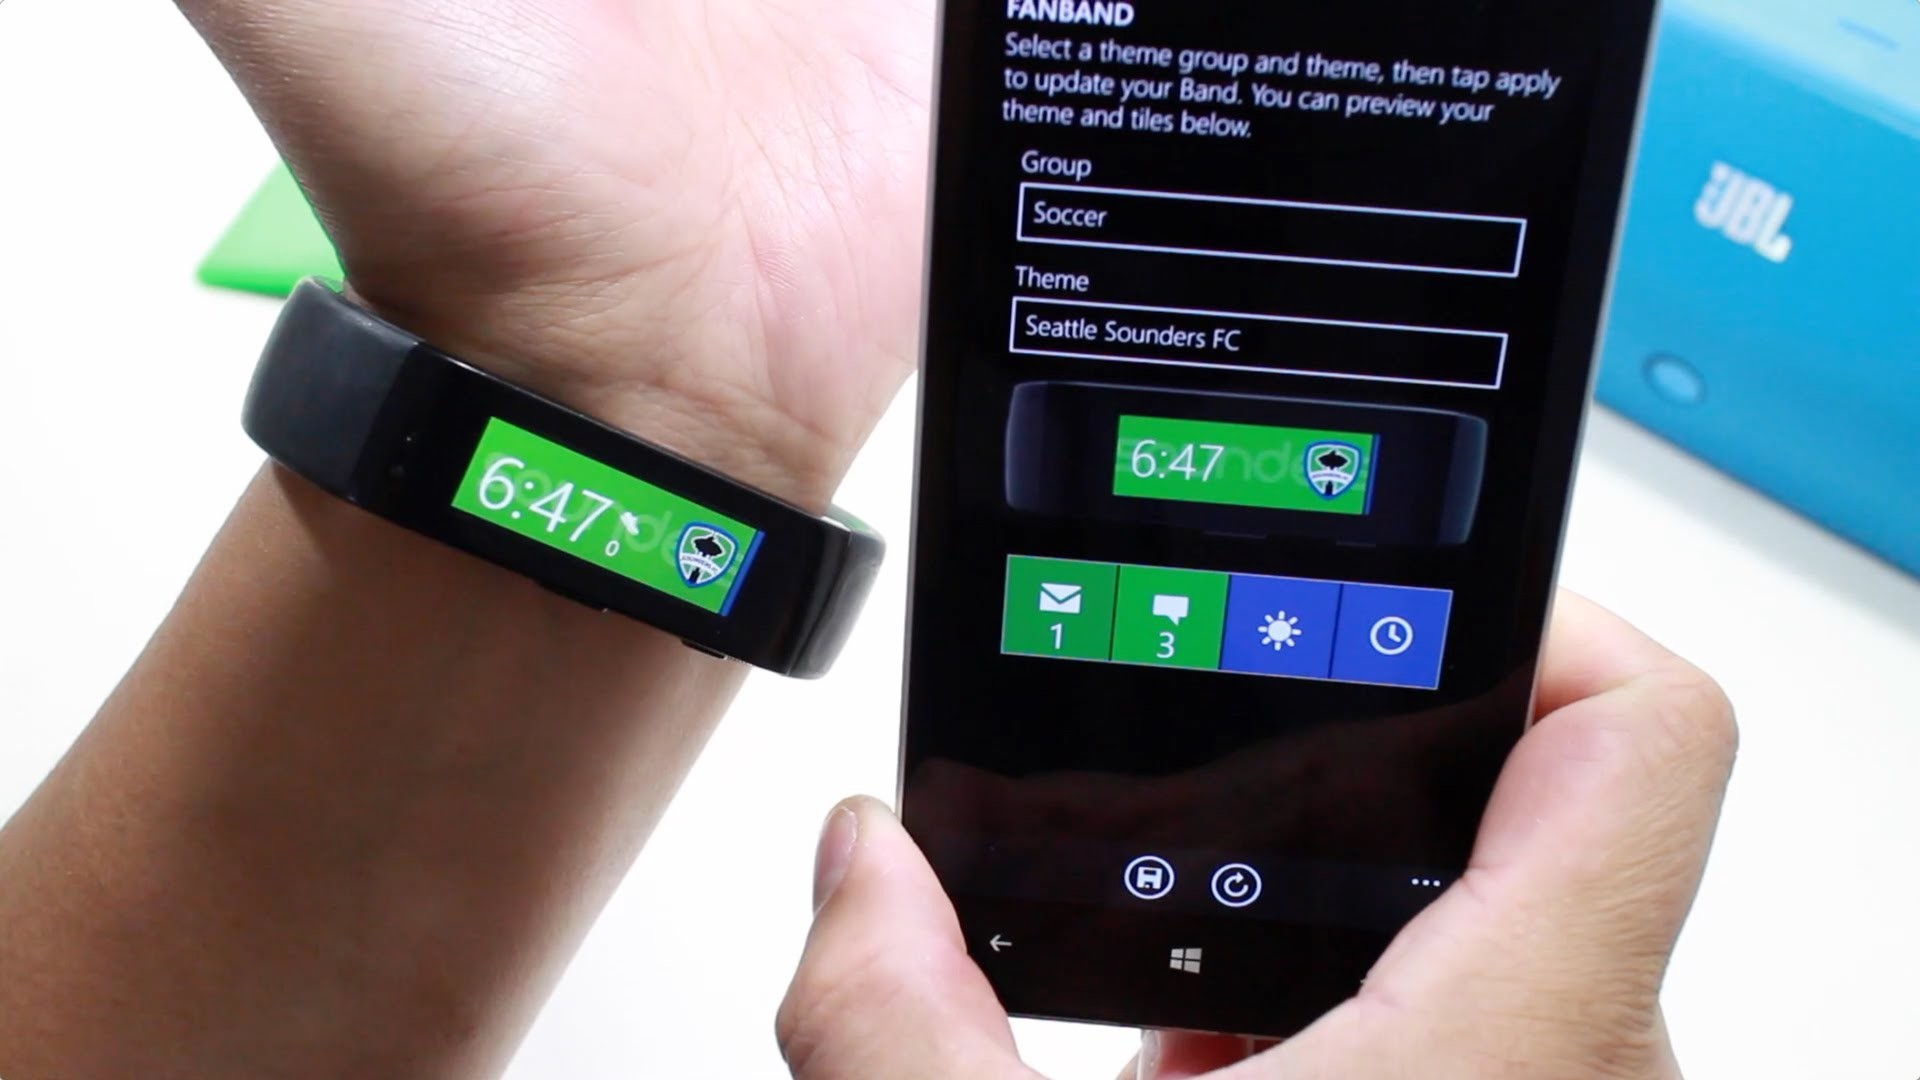 Fanband customizes your Microsoft Band's theme with your favorite sports  team | Windows Central